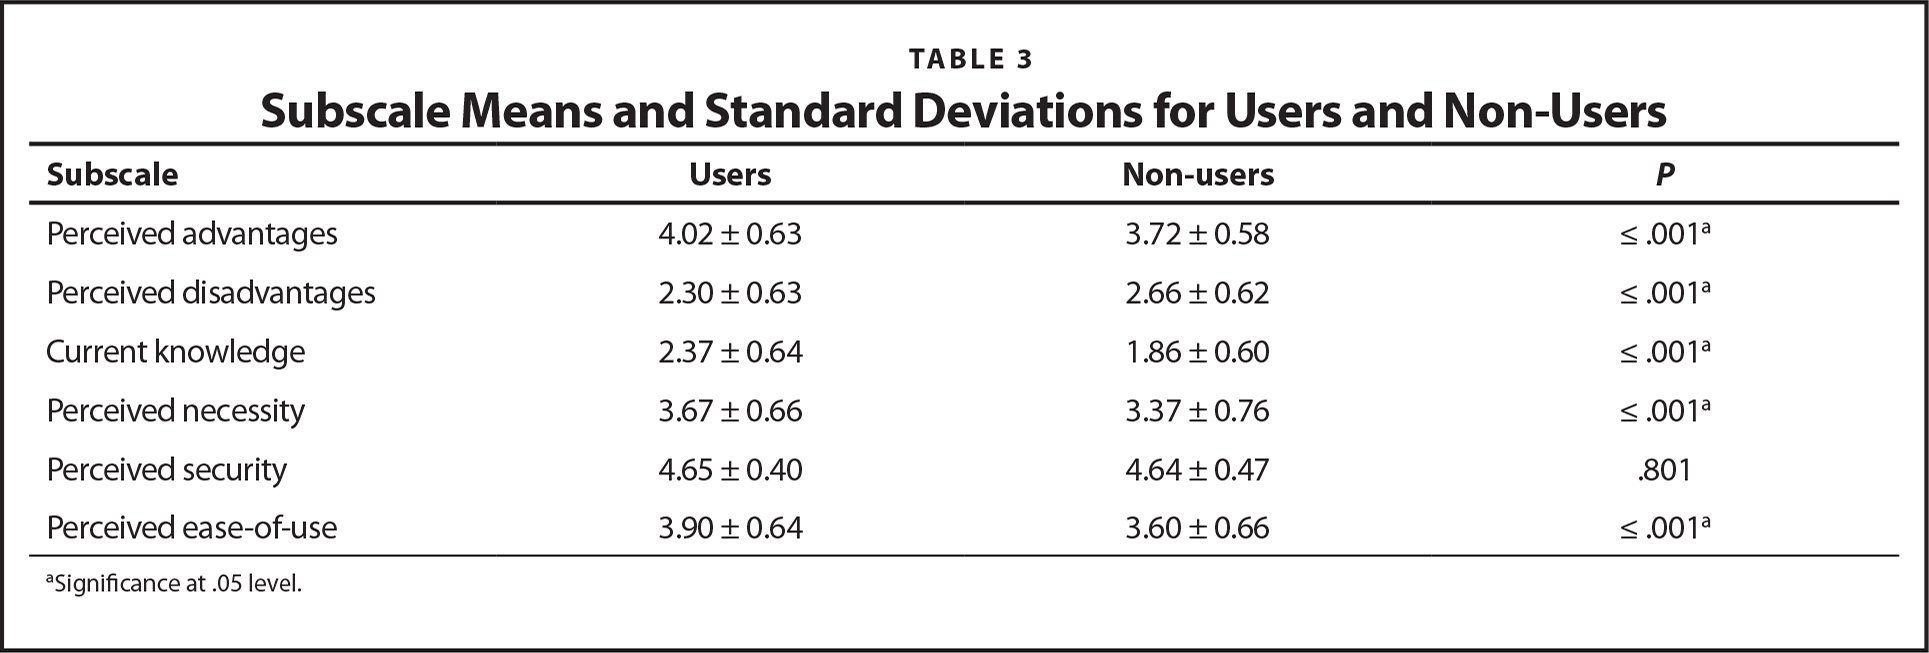 Subscale Means and Standard Deviations for Users and Non-Users